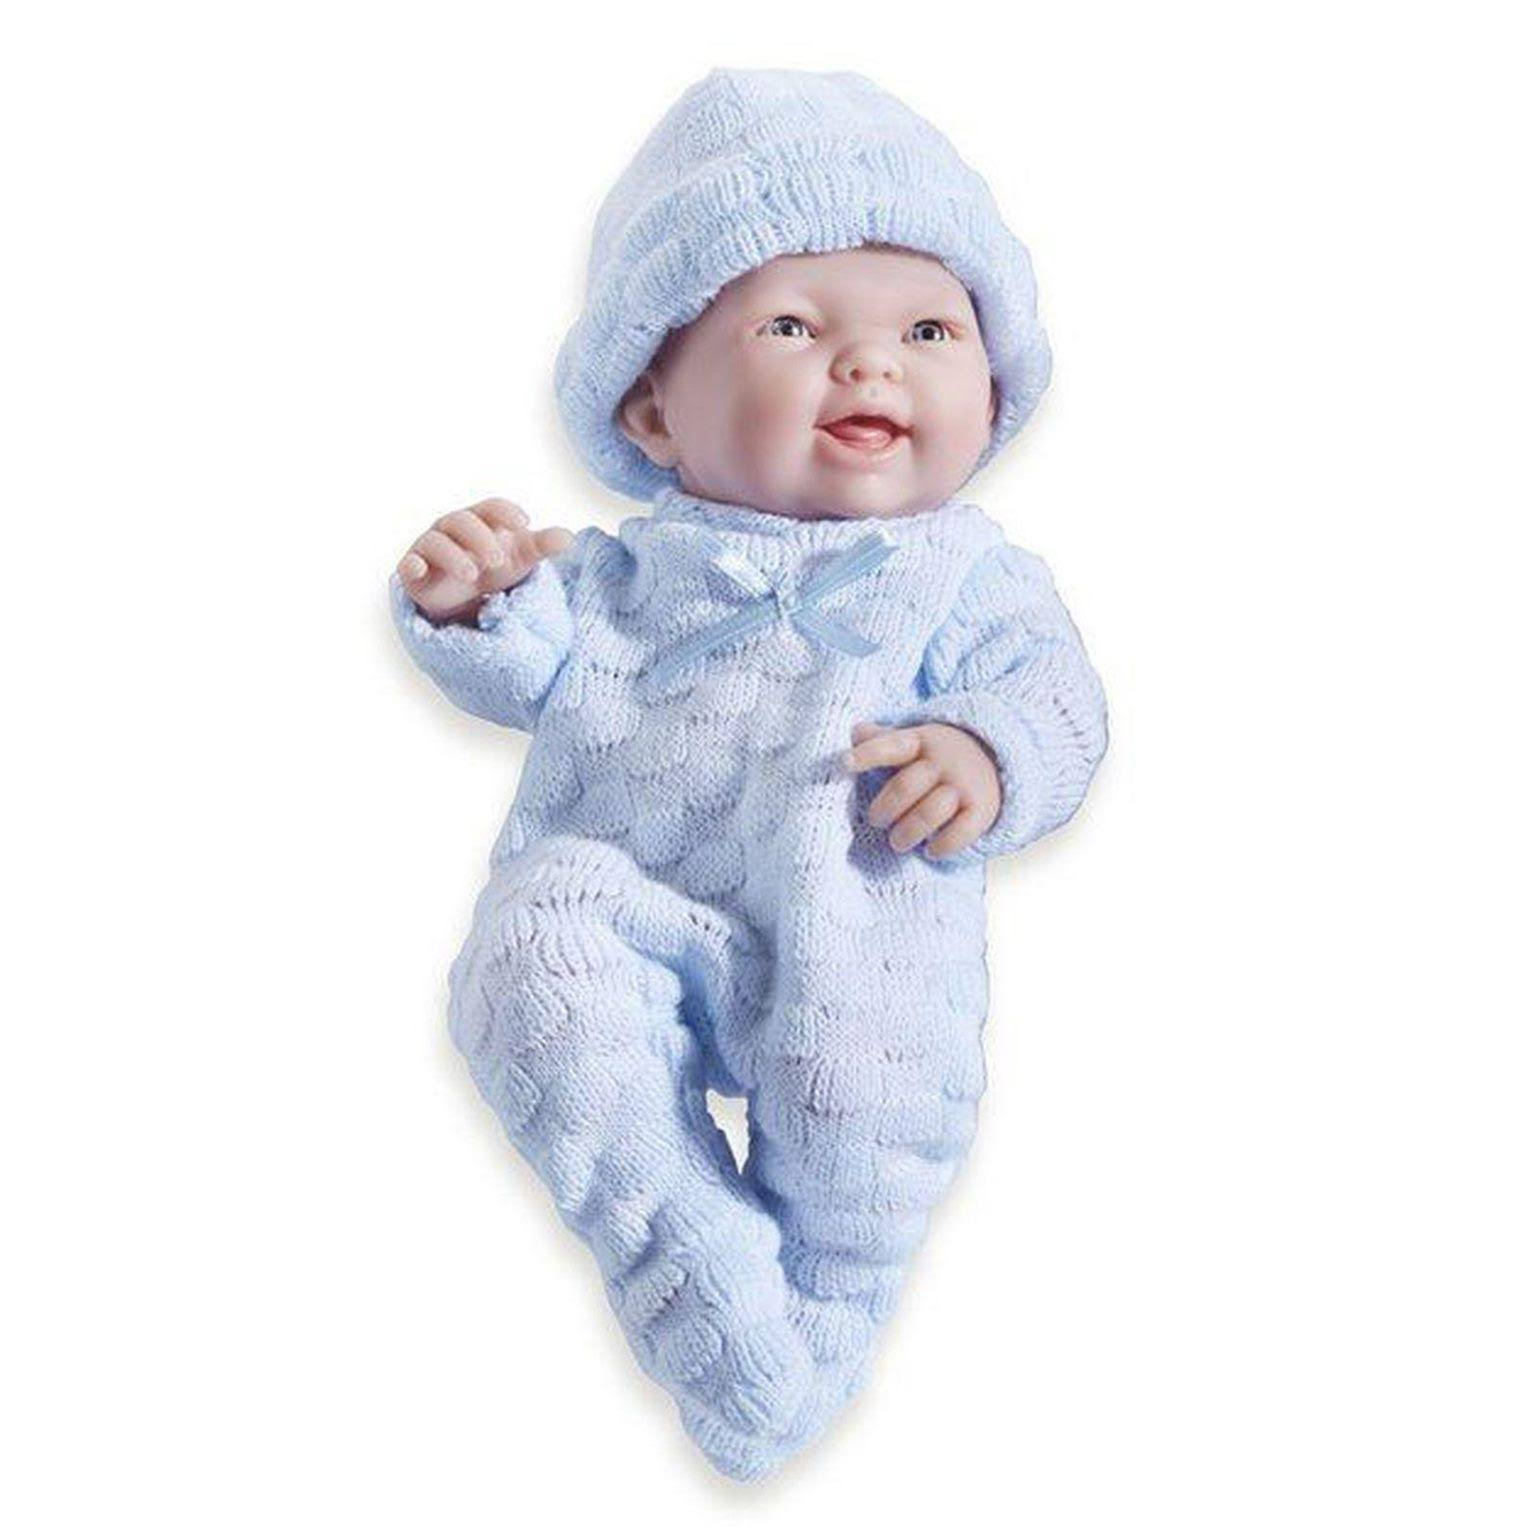 JC Toys Mini La Newborn Real Boy Caucasian Doll